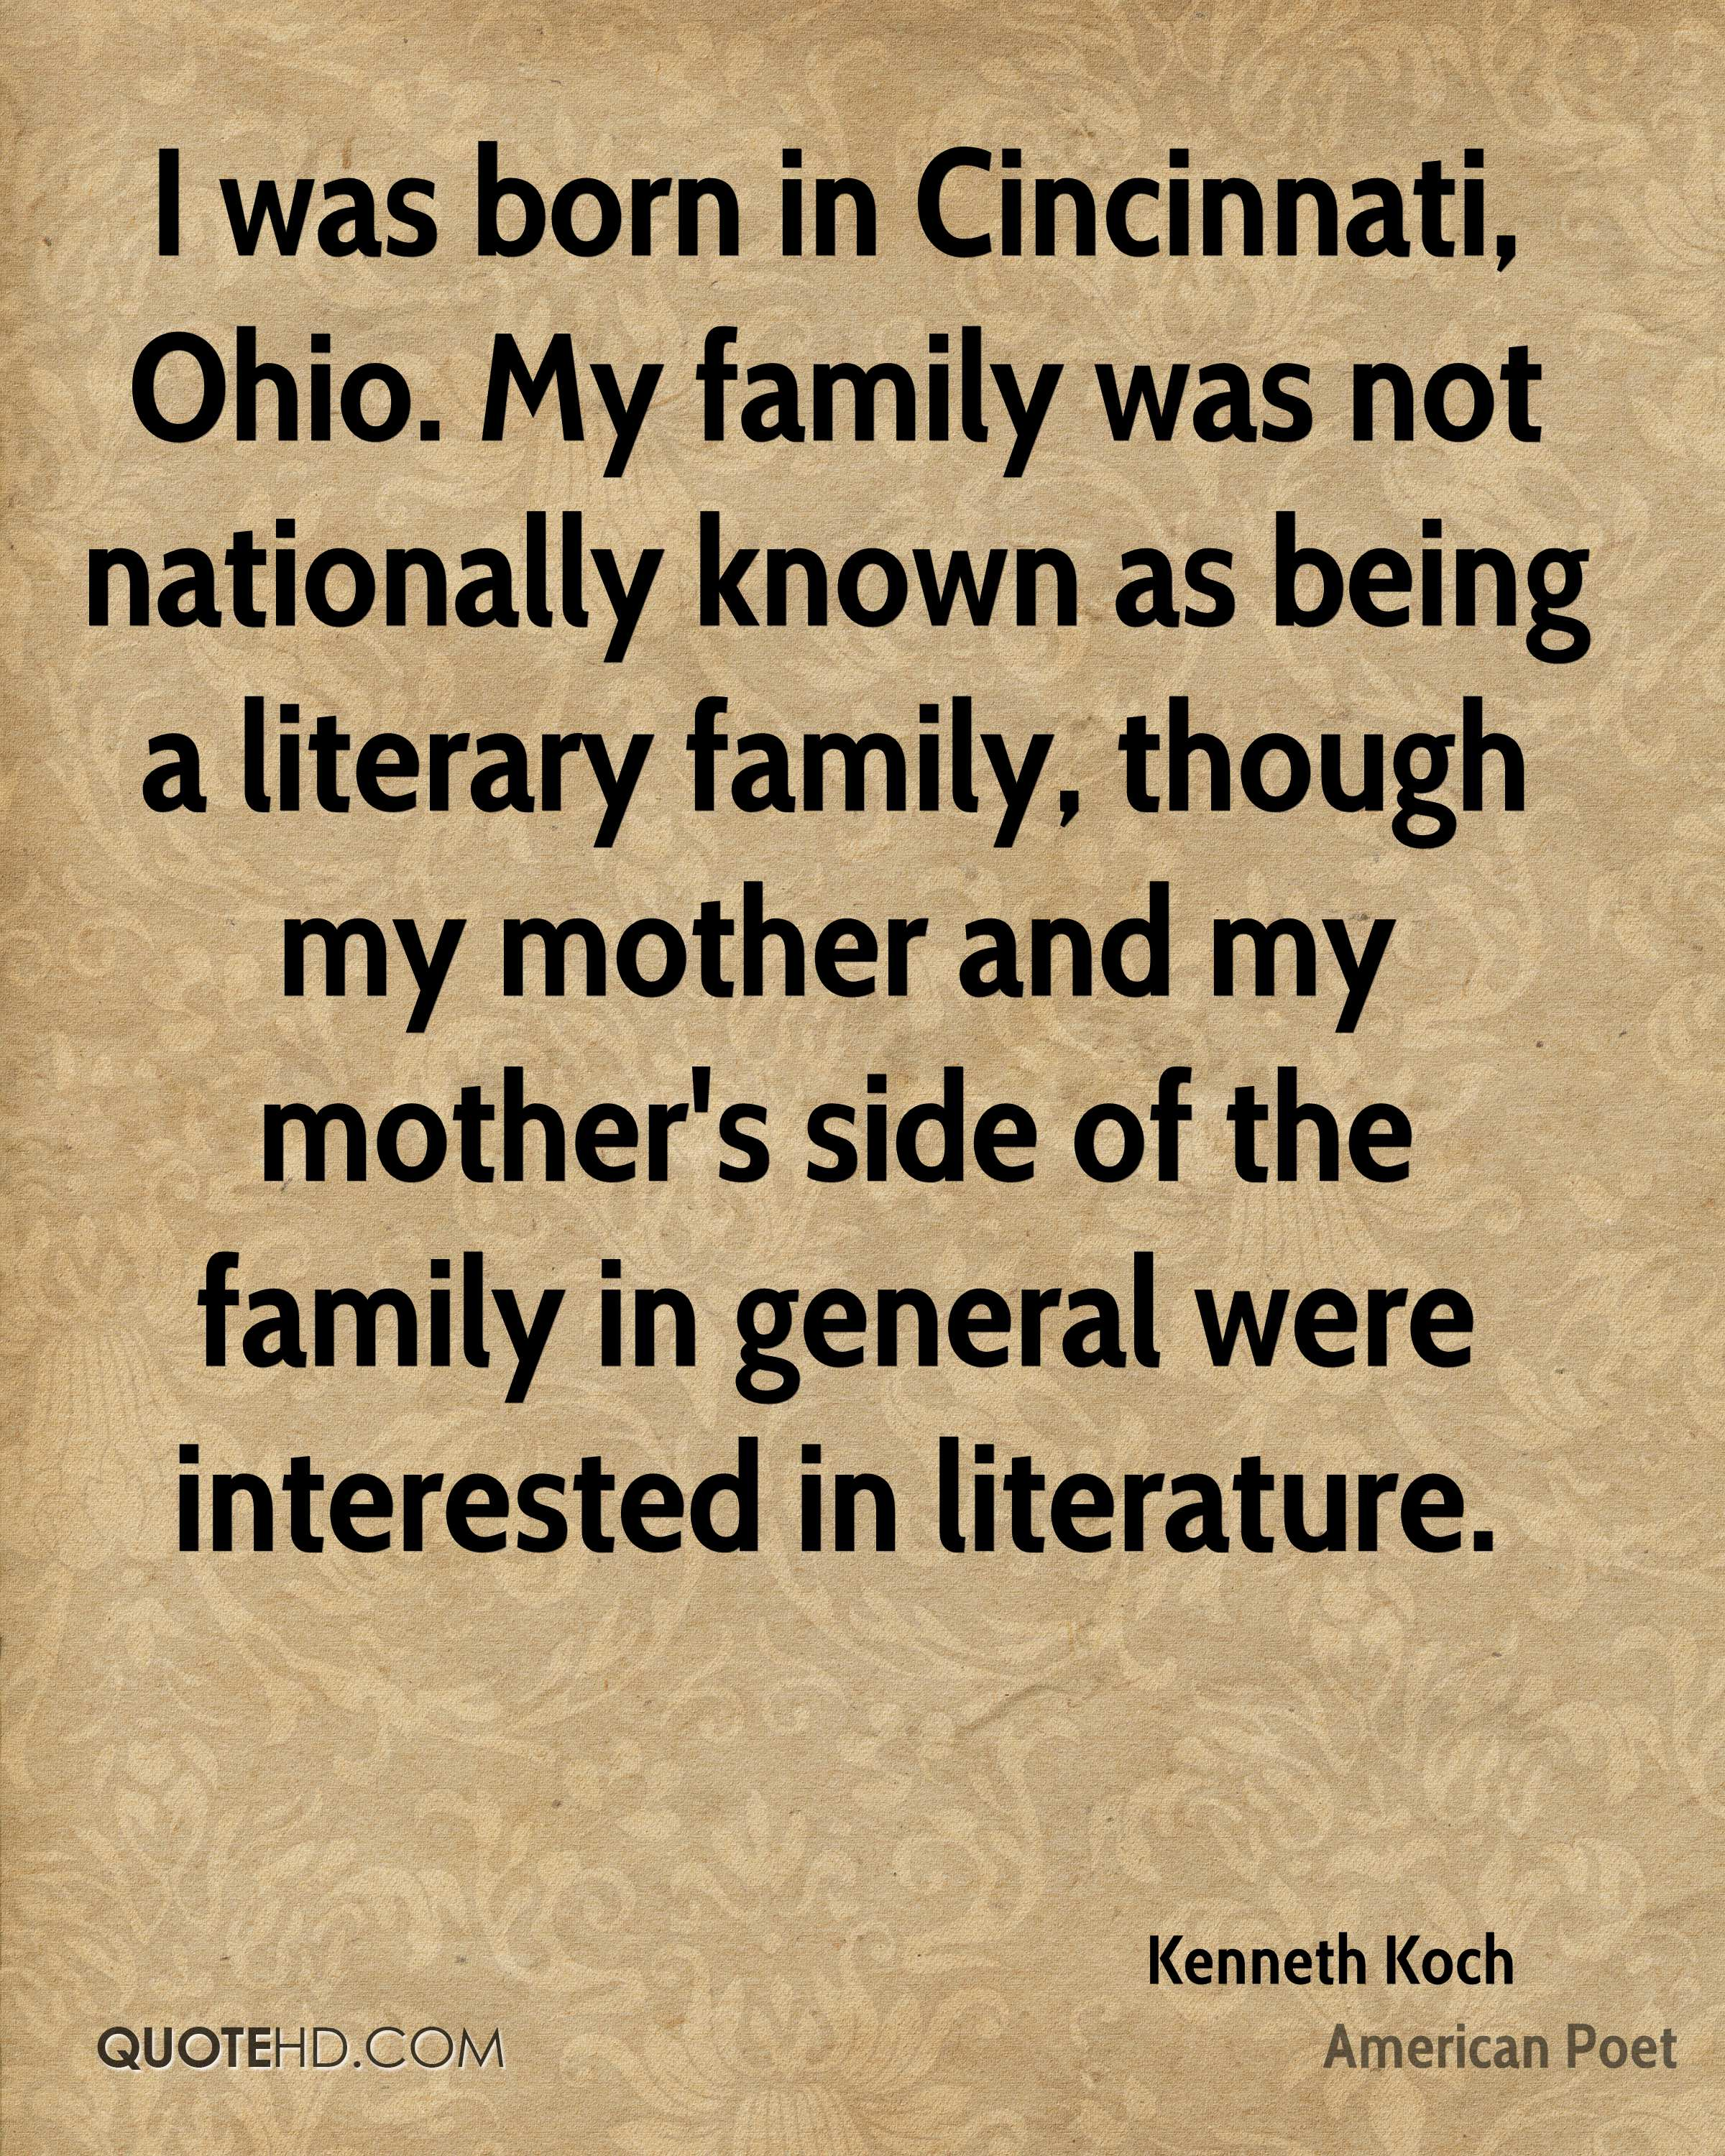 I was born in Cincinnati, Ohio. My family was not nationally known as being a literary family, though my mother and my mother's side of the family in general were interested in literature.